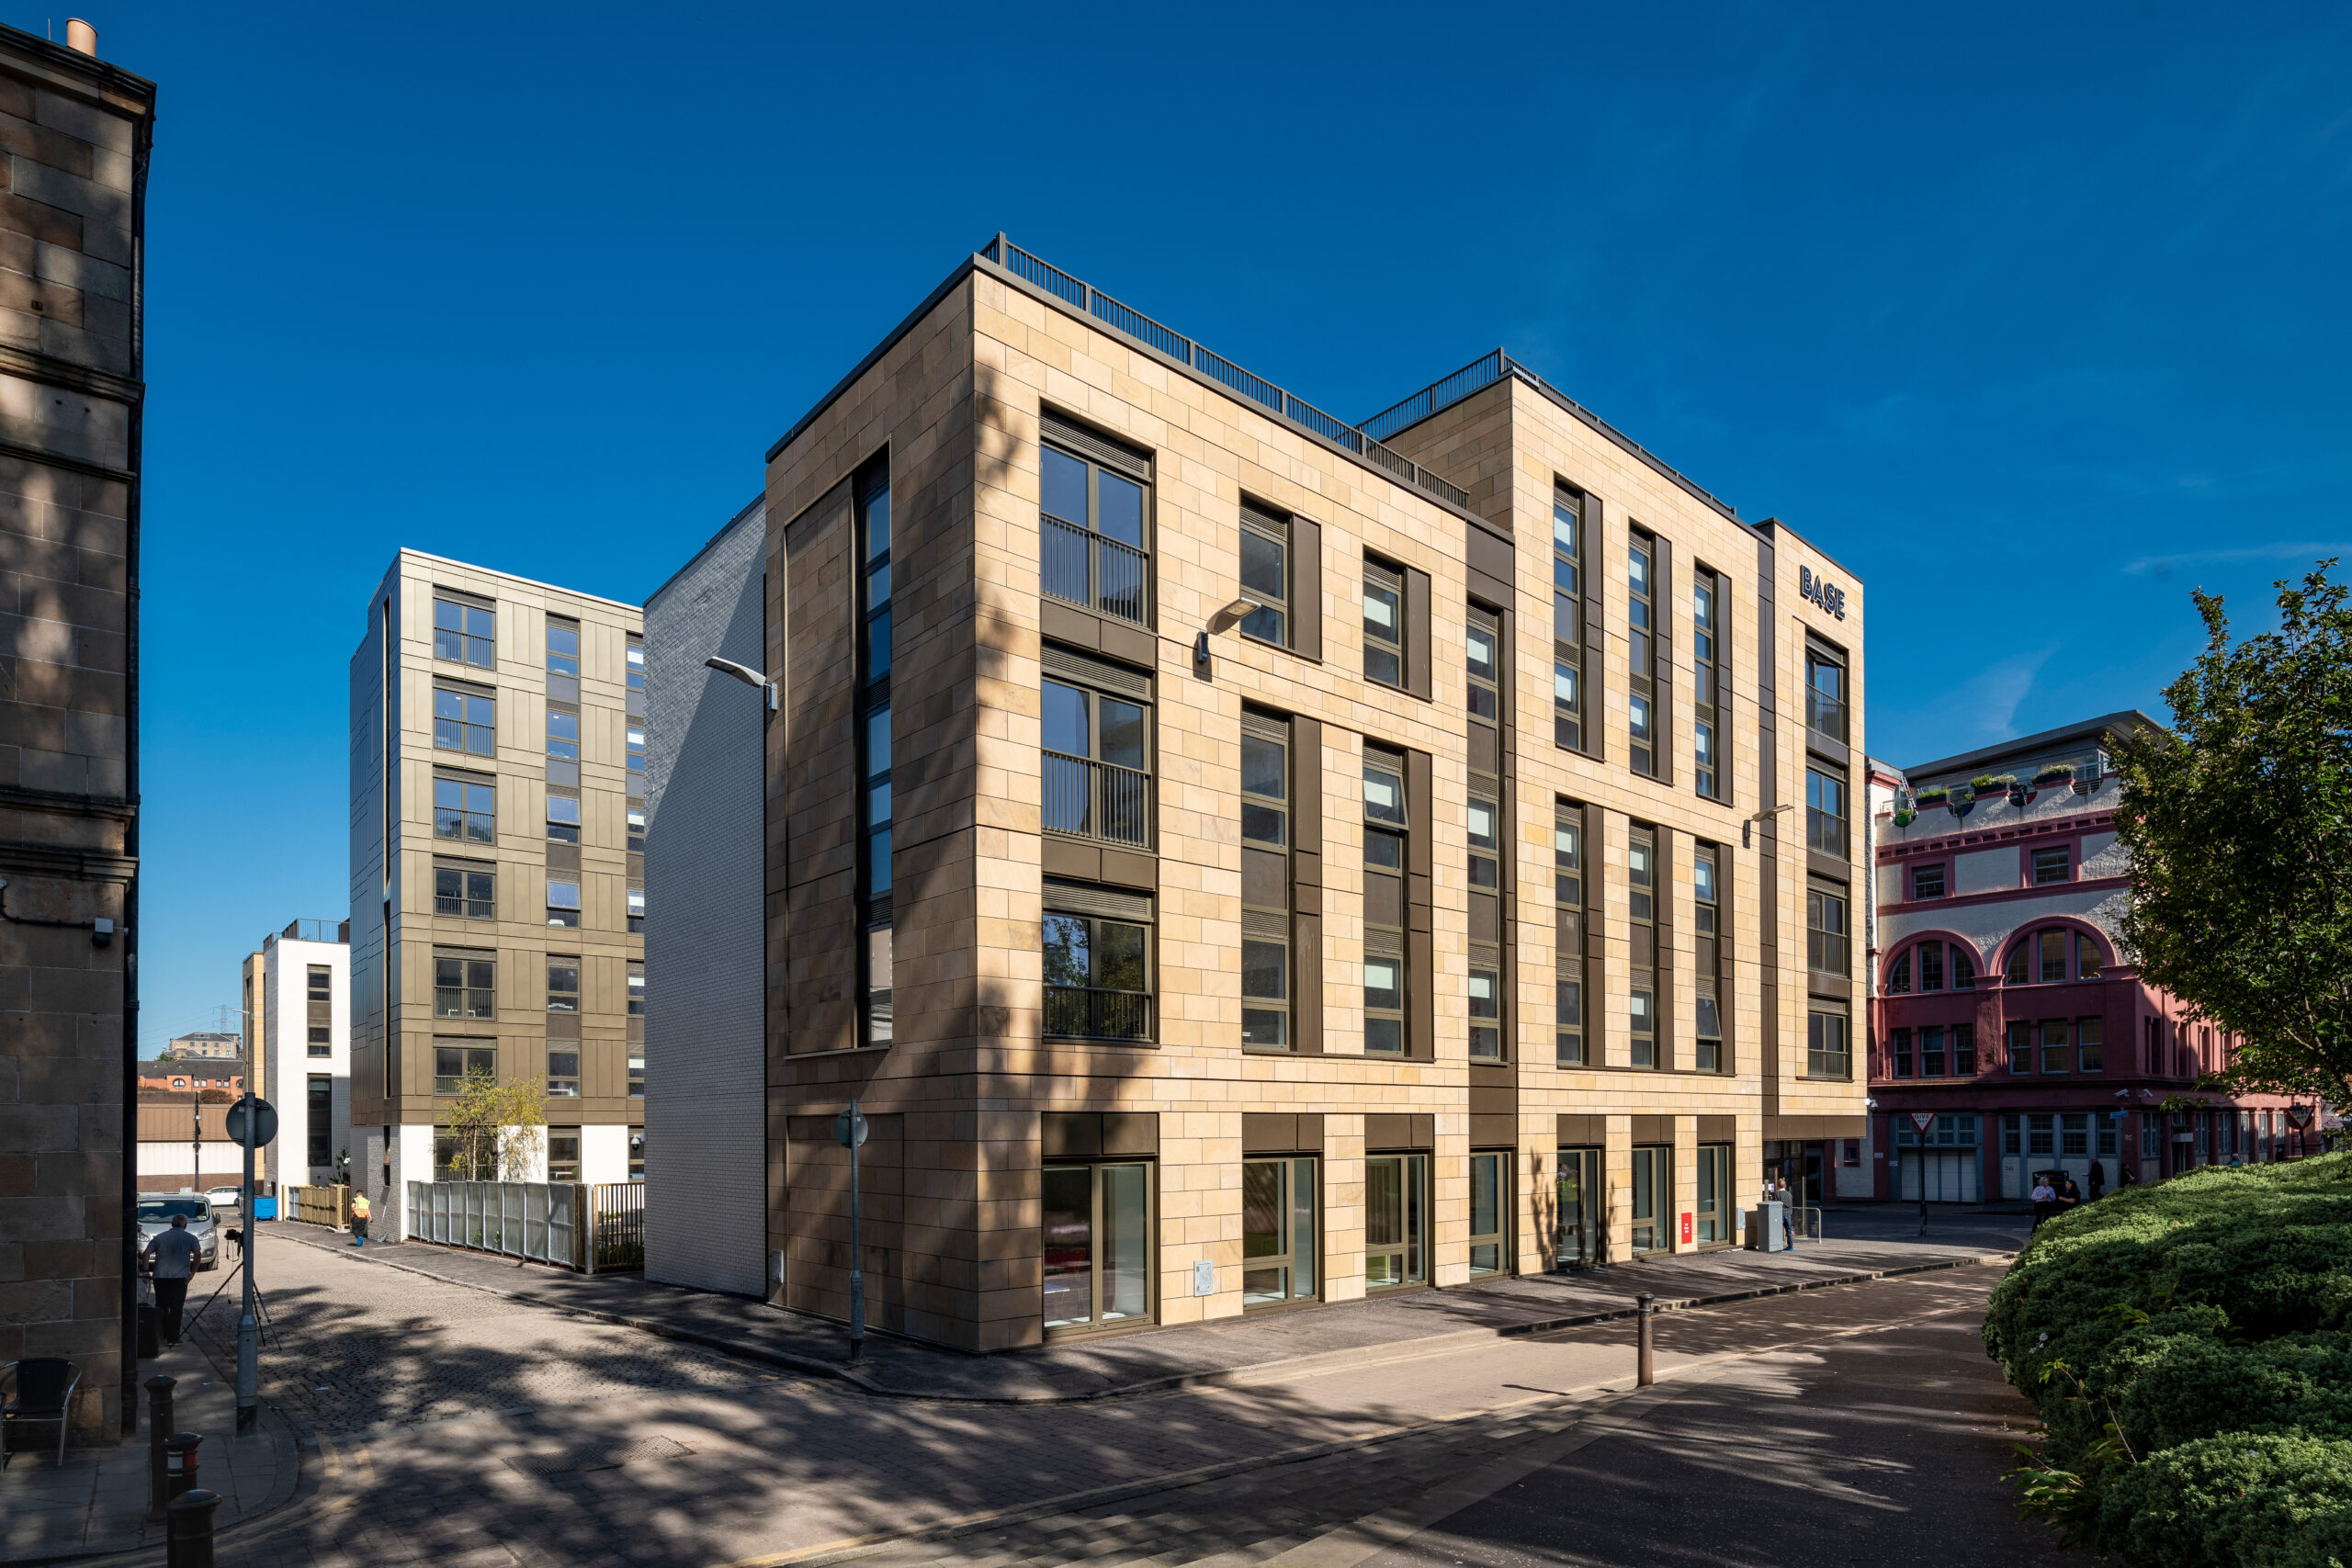 Ares Management and Generation Acquire Prime Purpose-Built Student Accommodation Asset in Glasgow